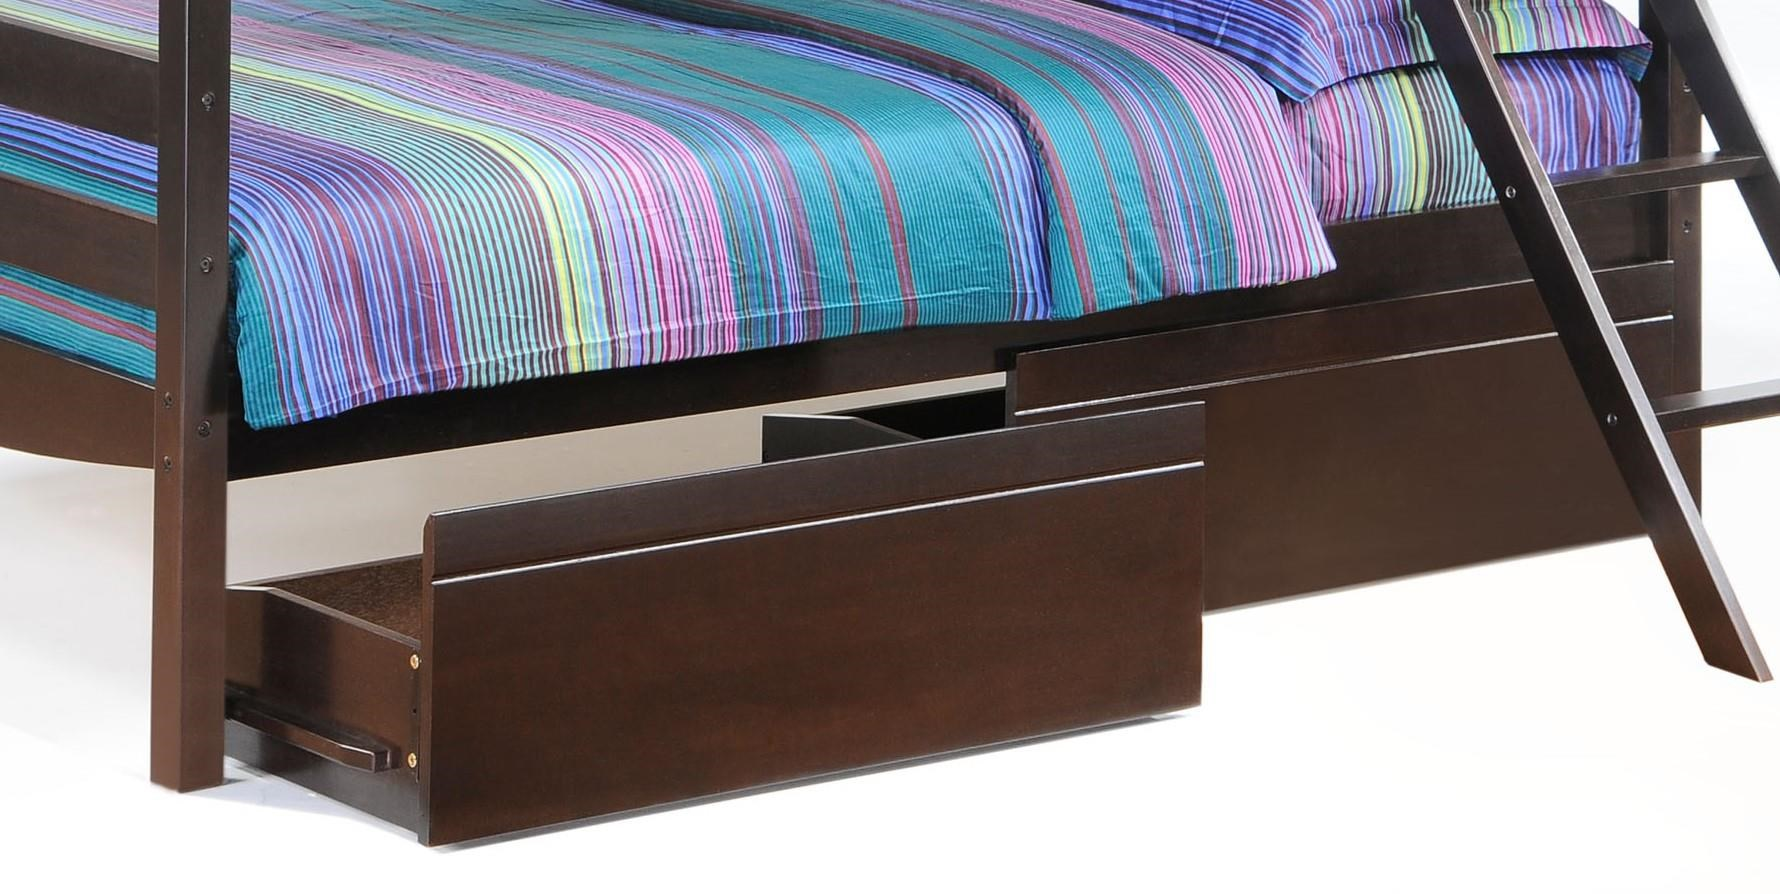 Zest Set of 2 Drawers by Night & Day Furniture at HomeWorld Furniture